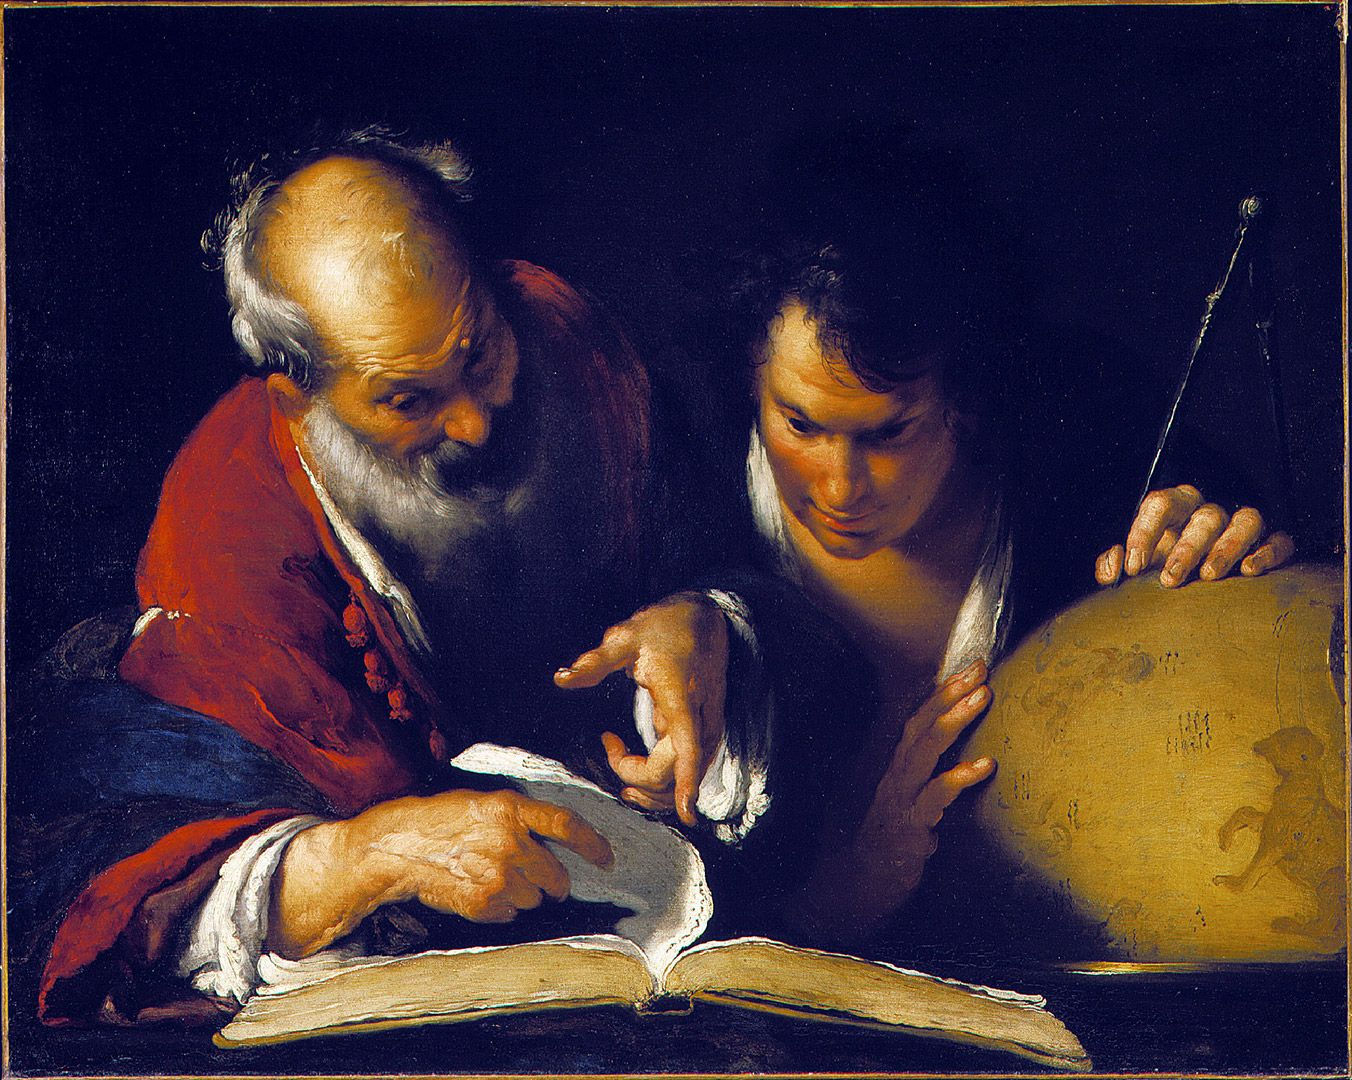 Bernardo Strozzi, Eratosthenes Teaching in Alexandria, about 1635, oil on canvas, 78.9 x 99.4 cm. Purchase, Horsley and Annie Townsend Bequest.